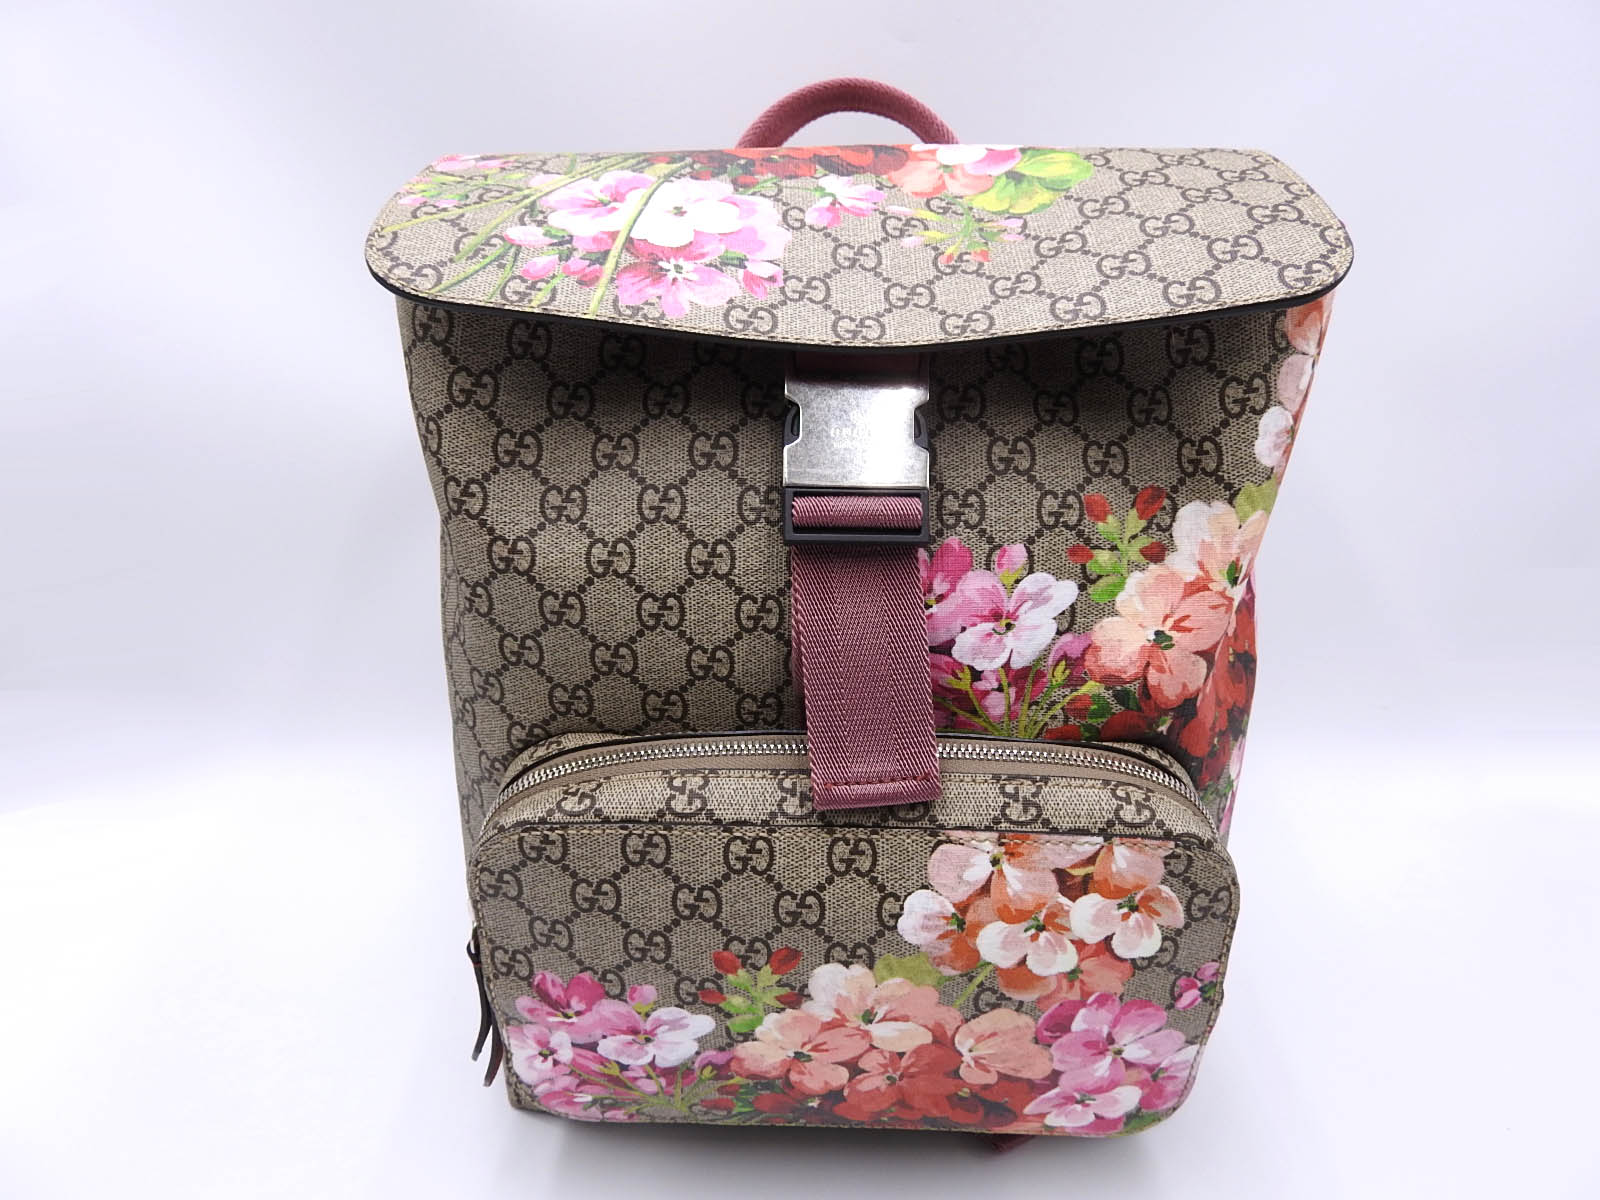 0c3ecc78267b13 Details about Auth GUCCI GG Blooms Supreme Backpack Bag PVC Leather Pink  Red Beige 405019 9356